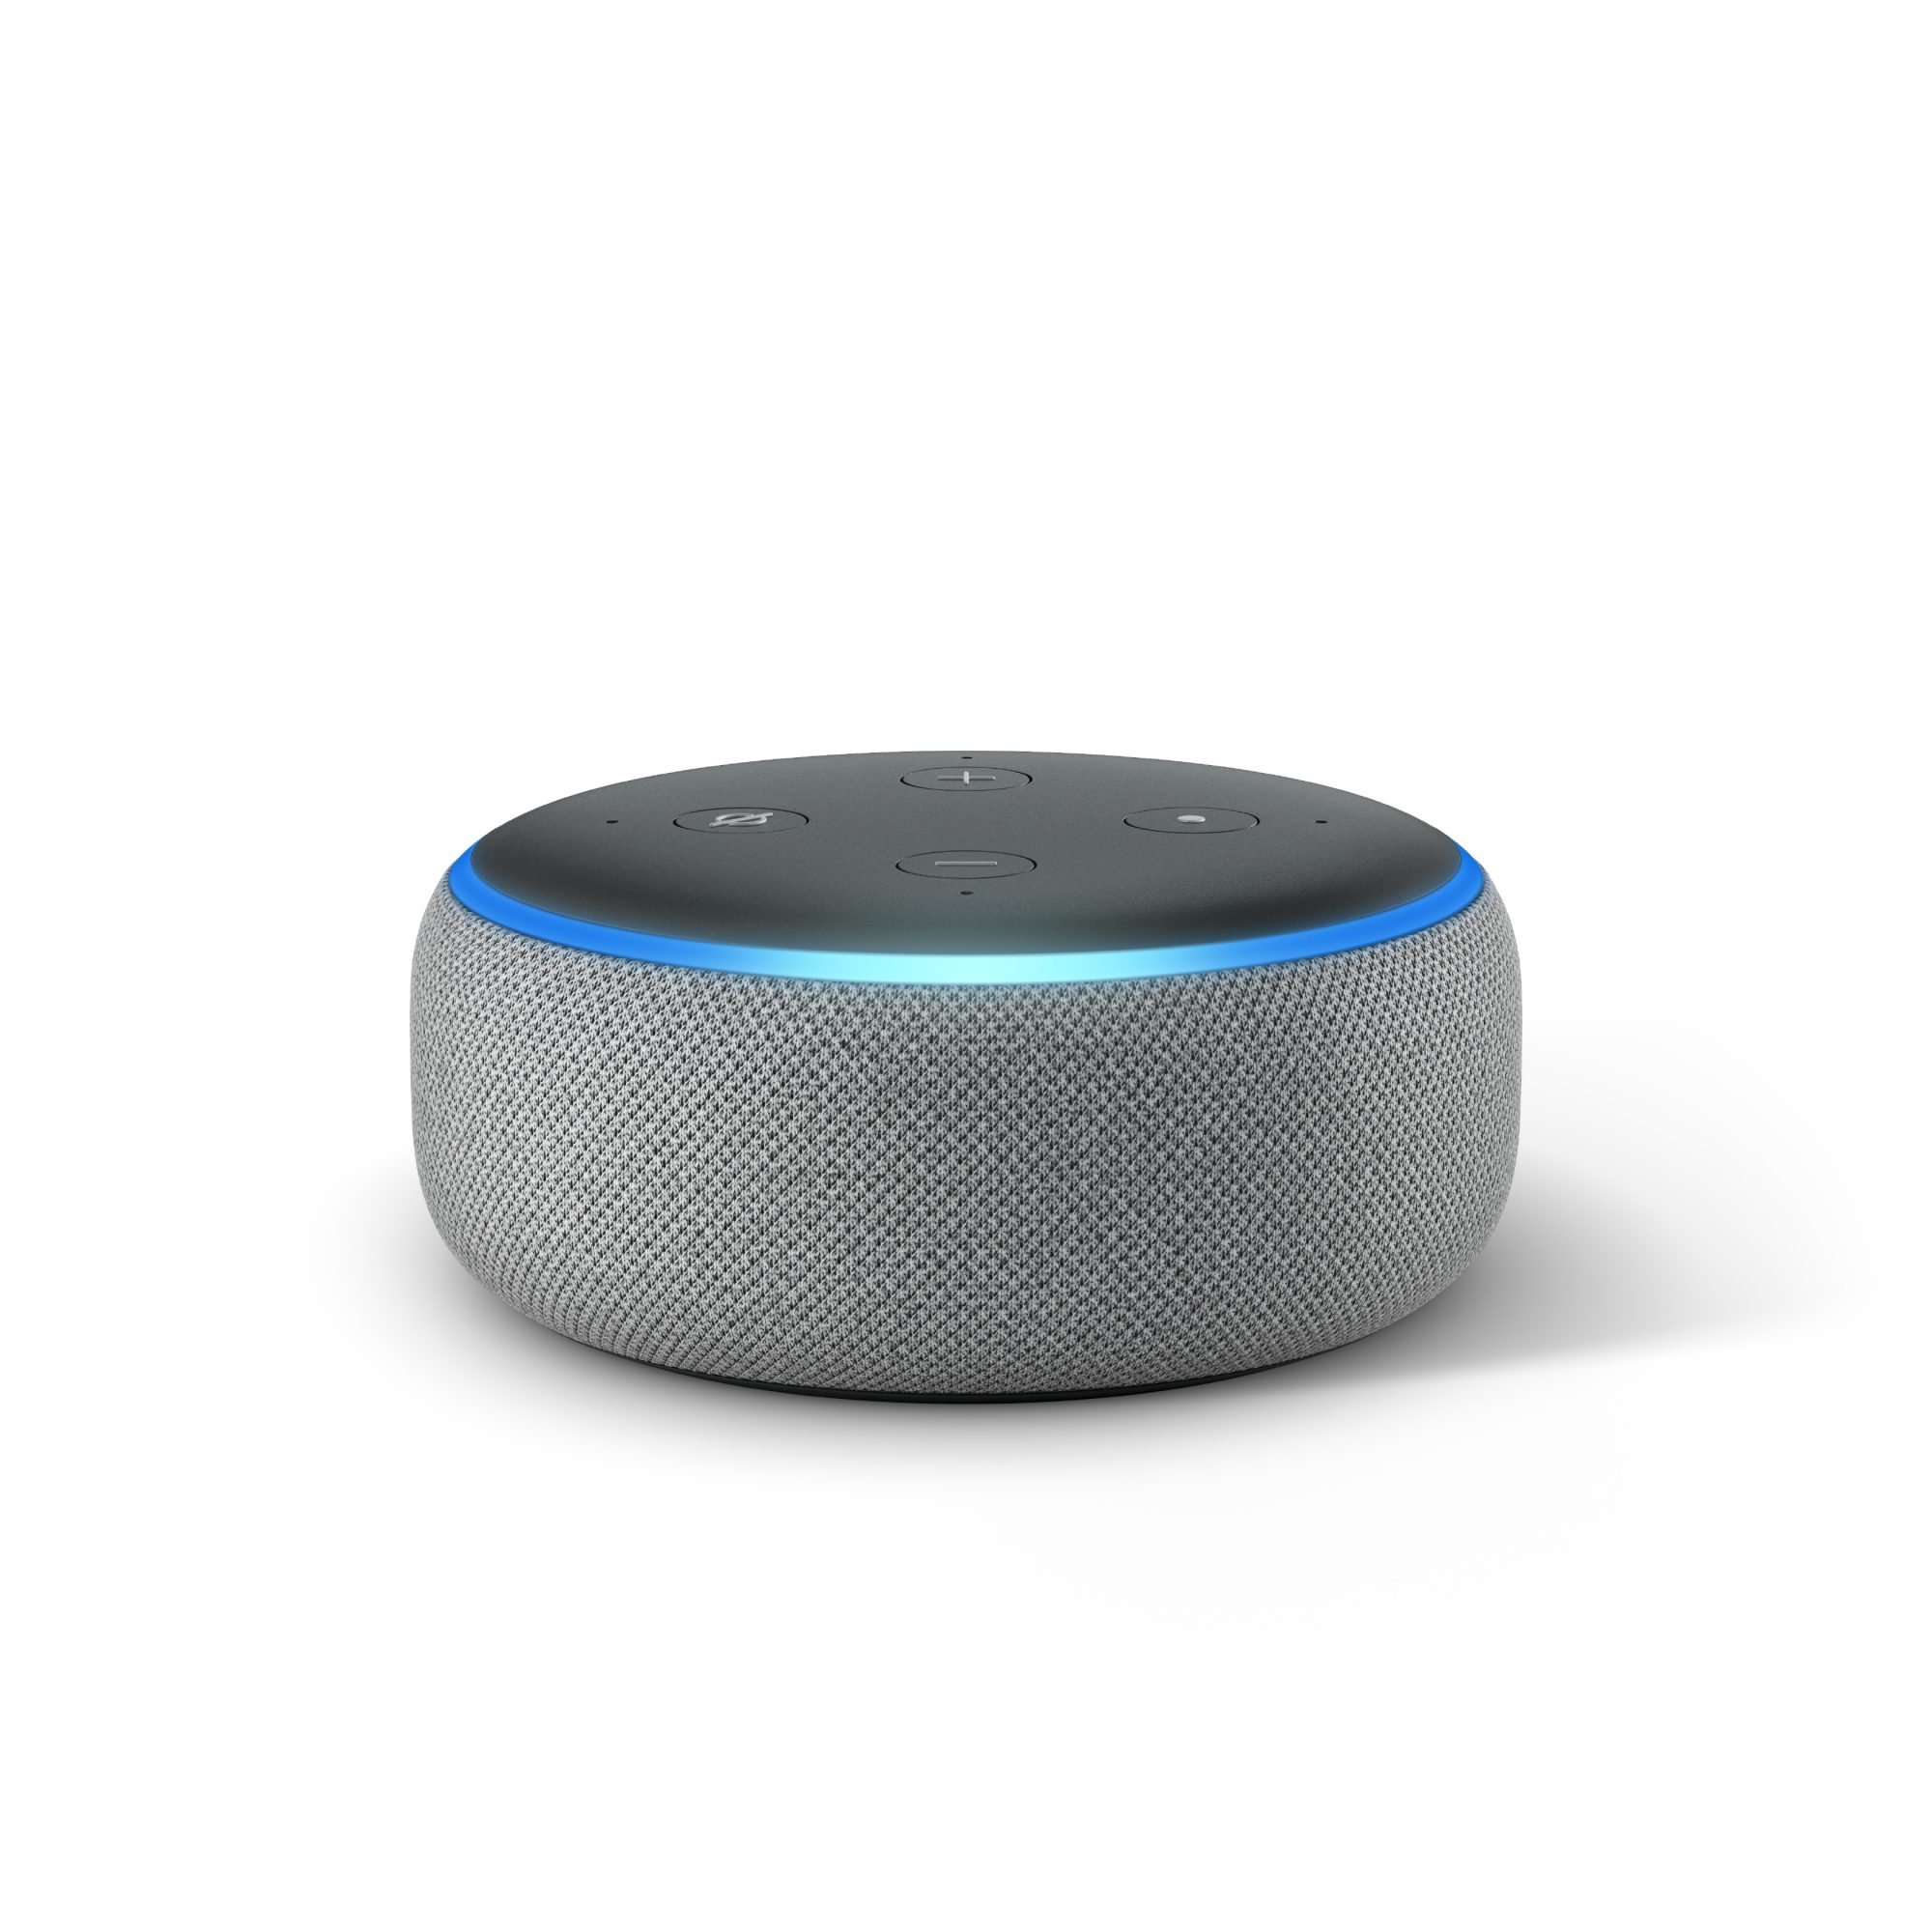 Gifts for Book Lovers: new amazon echo device